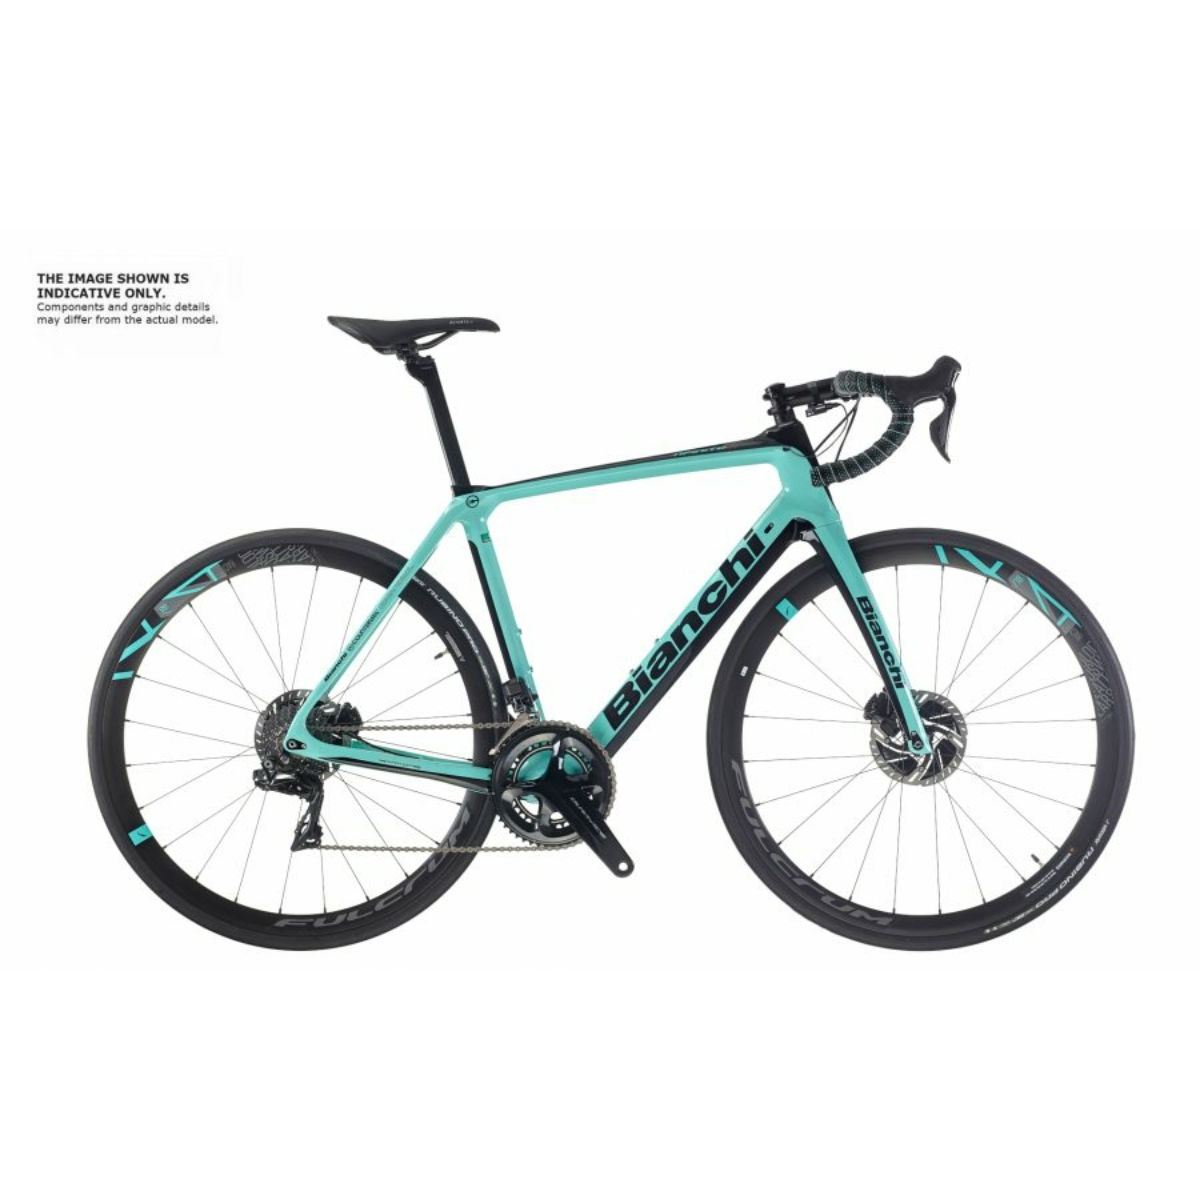 BIANCHI INFINITO CV DISC - RED ETAP AXS 12SP 46/33 (FULCRUM RACING) kerékpár